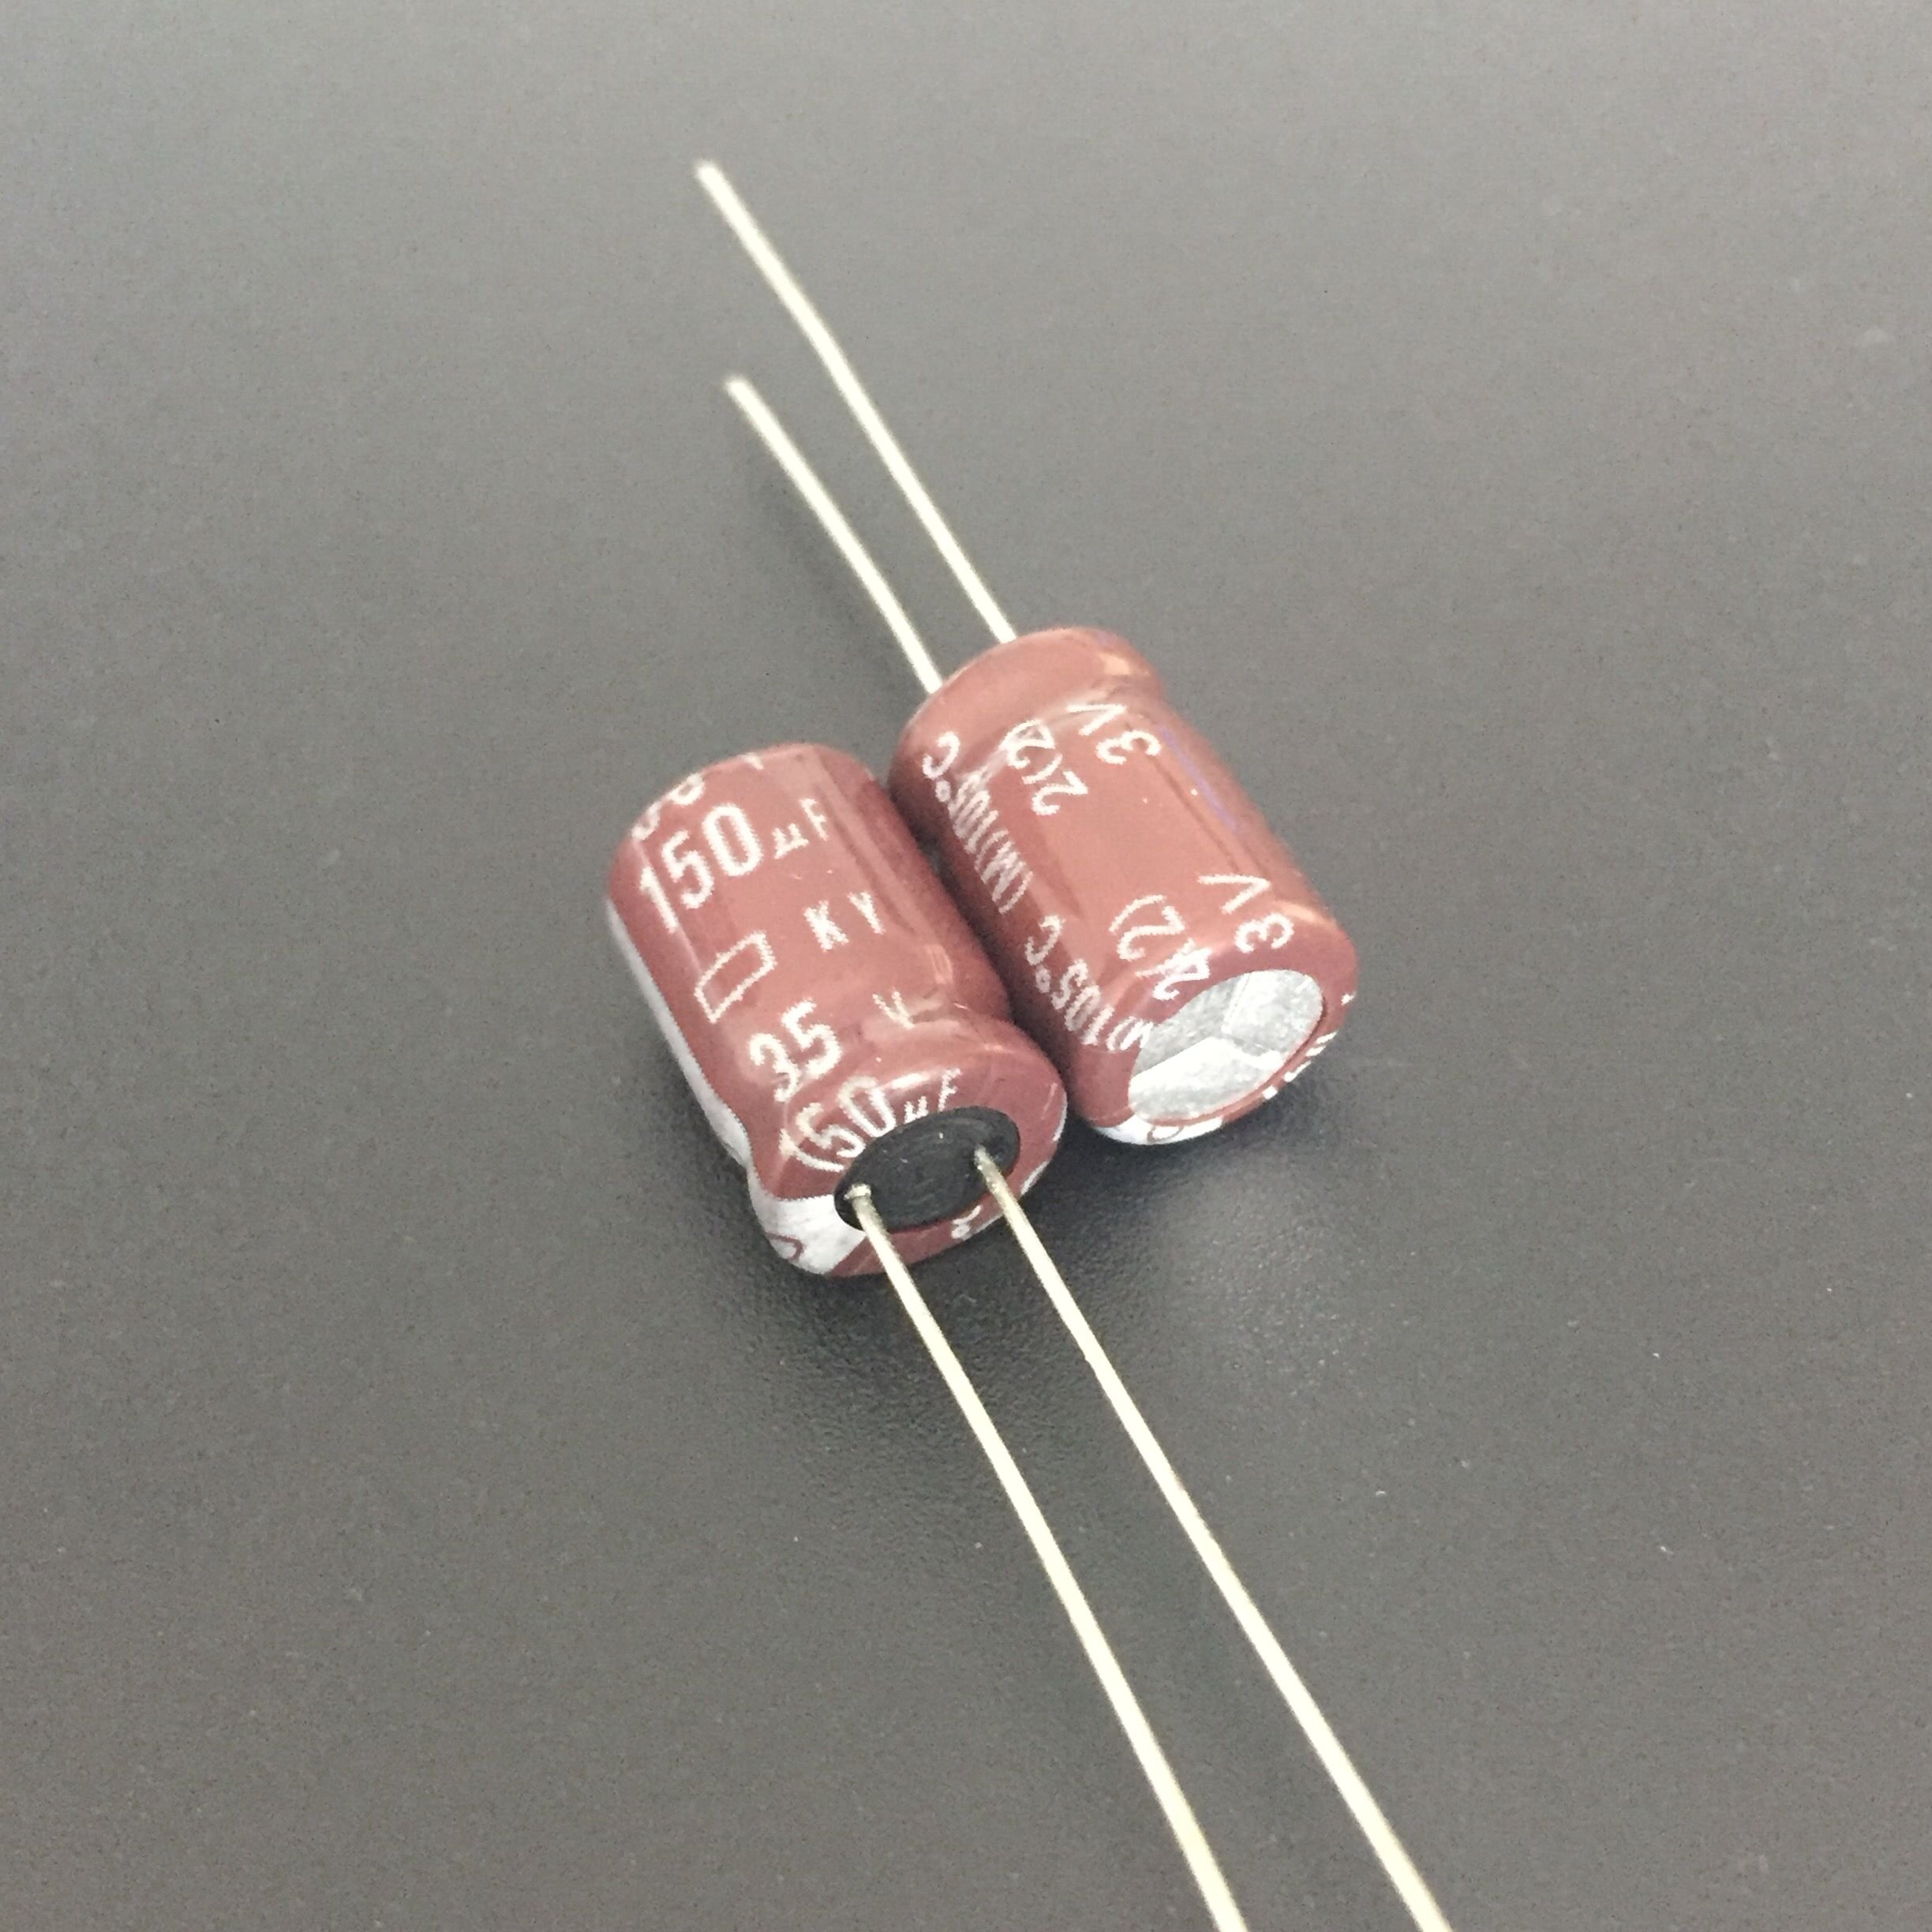 10pcs 150uF 35V NIPPON KY Series 8x11.5mm Low ESR 35V150uF Aluminum Electrolytic Capacitor